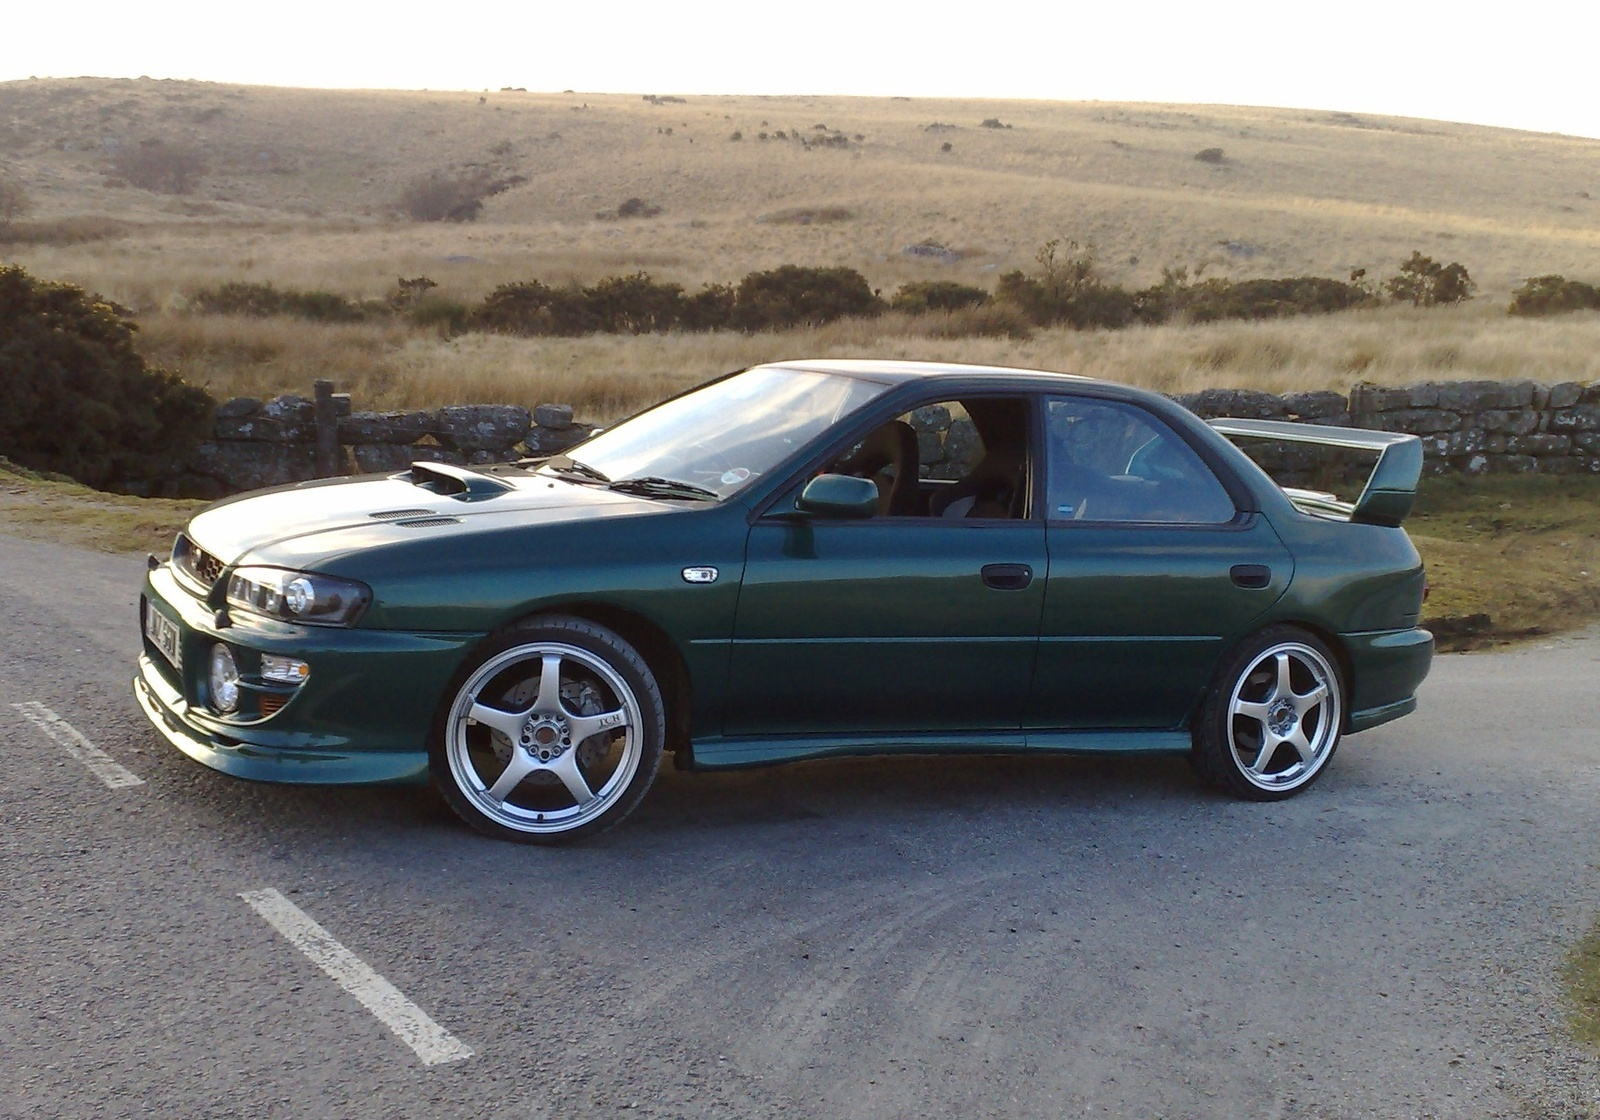 Picture of 1999 subaru impreza 4 dr l awd sedan exterior gallery_worthy